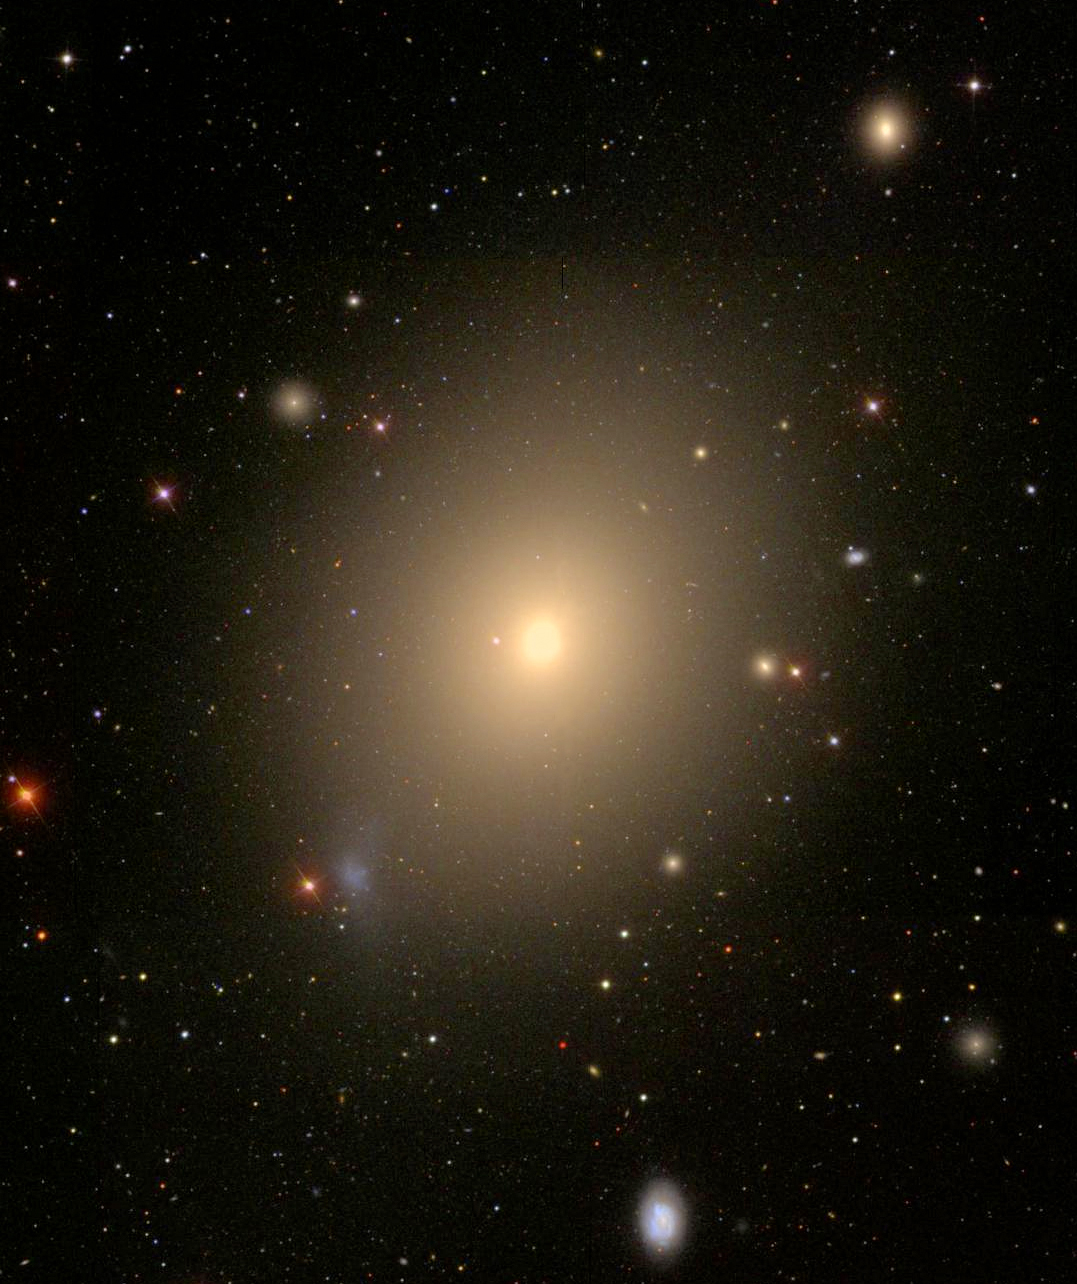 Elliptical Galaxy Ngc 4472 Mcdonald Observatory